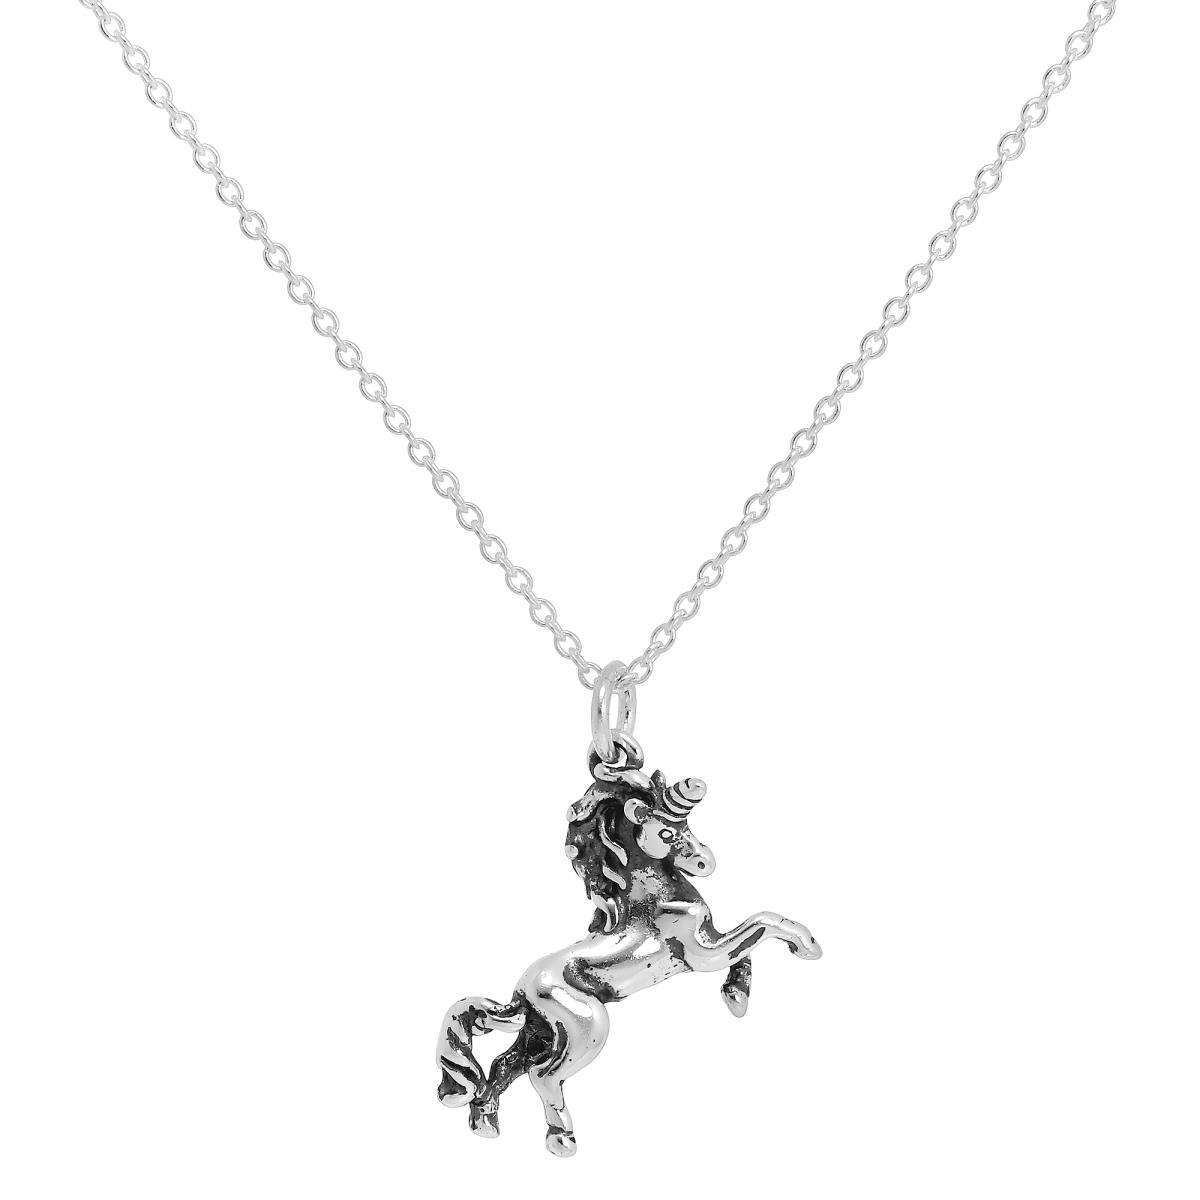 Sterling Silver Prancing Unicorn Necklace On Trace Chain